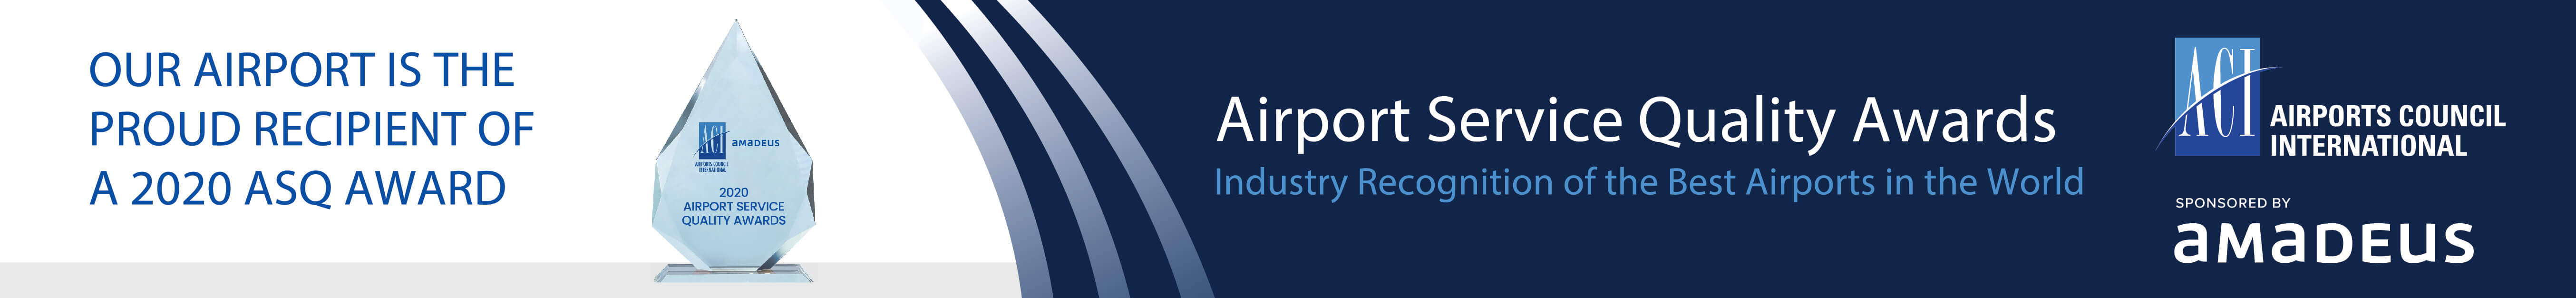 WCAA Airport Service Quality Awards banner